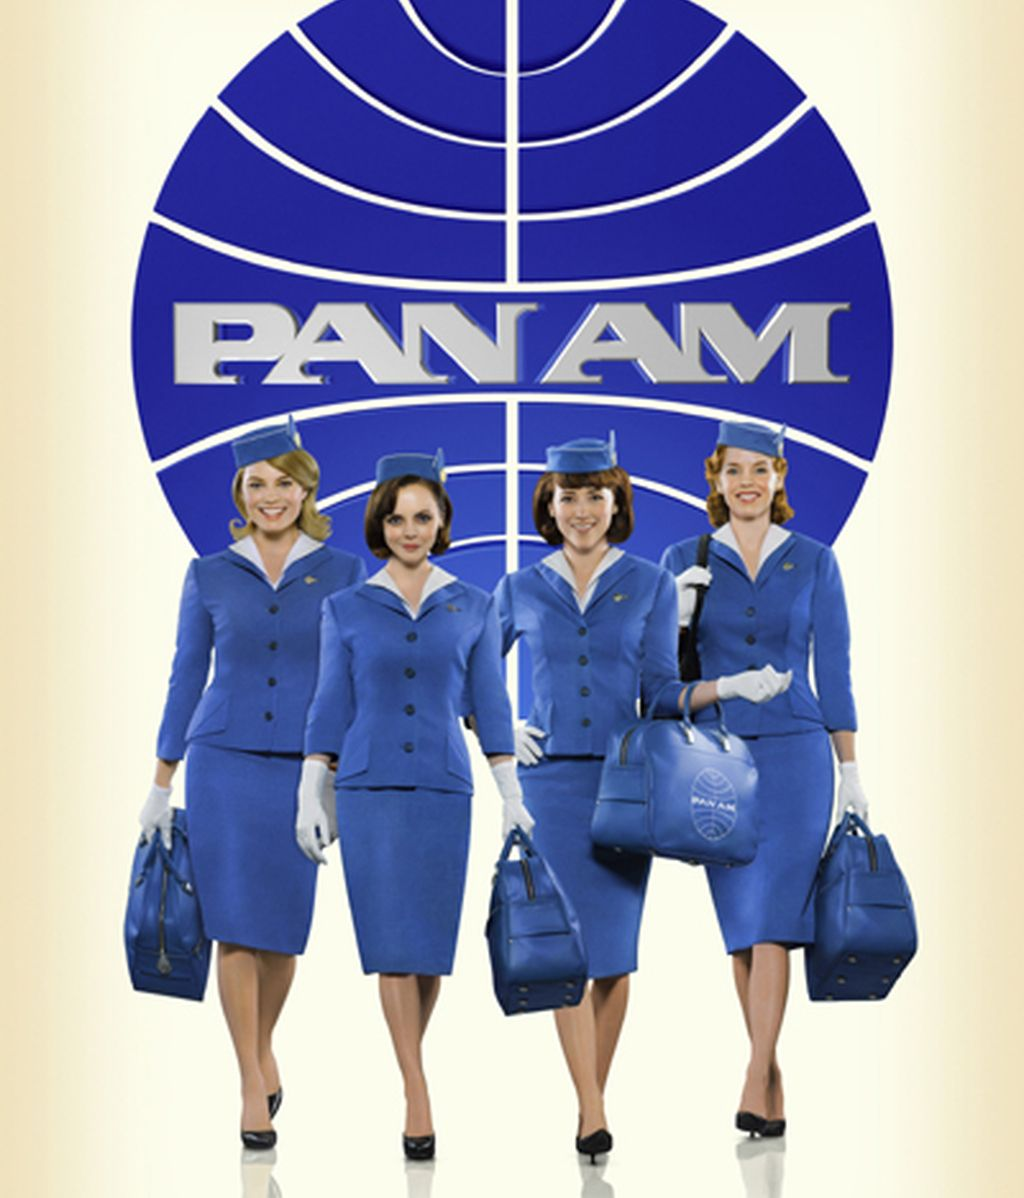 'Pan Am' (Canal + 1)